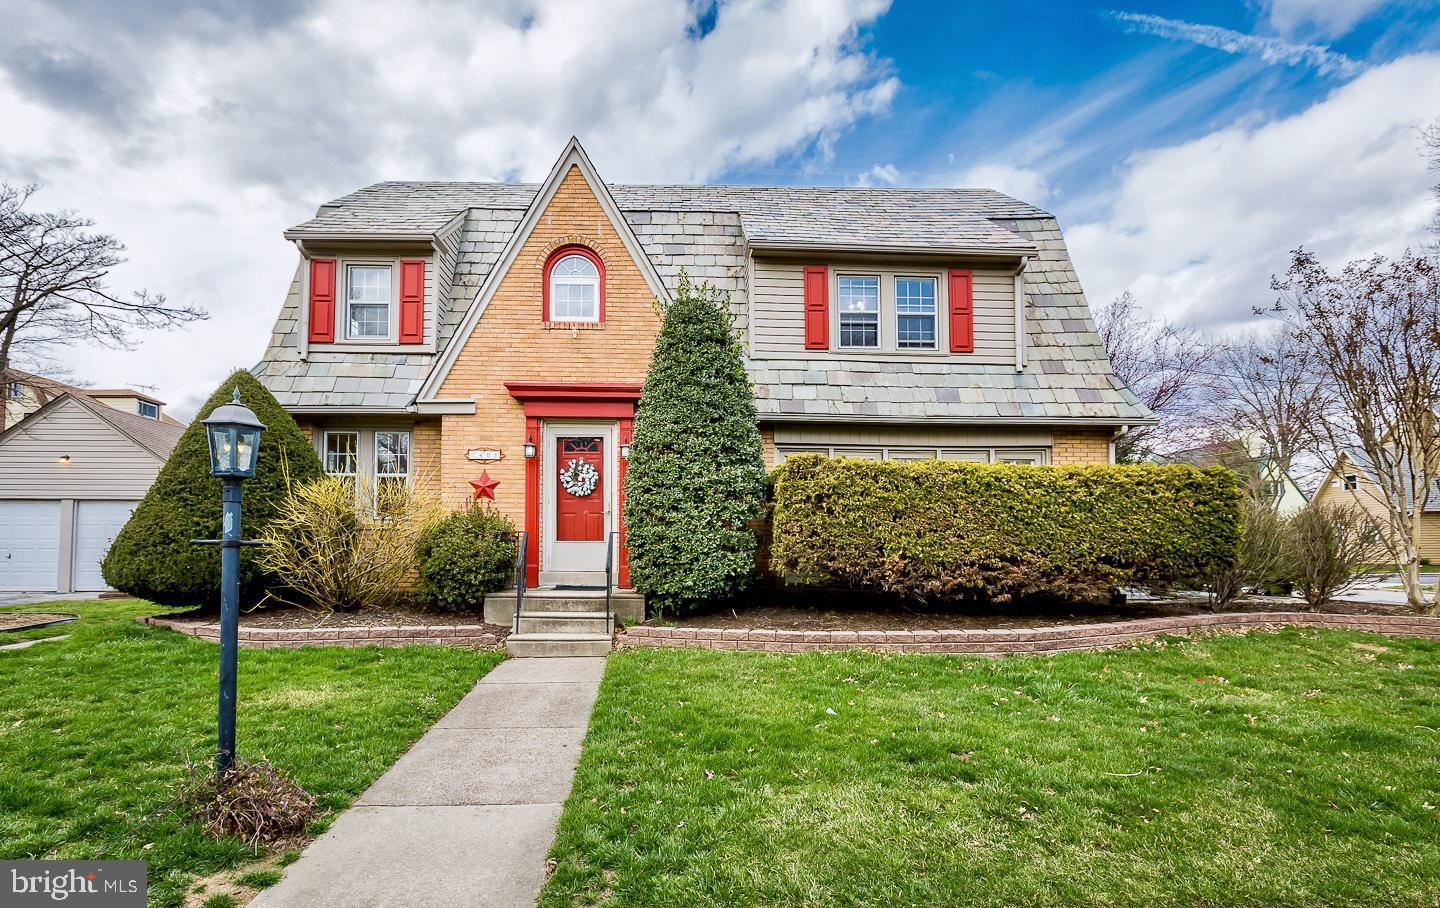 3401 Highland Avenue Drexel Hill, PA 19026